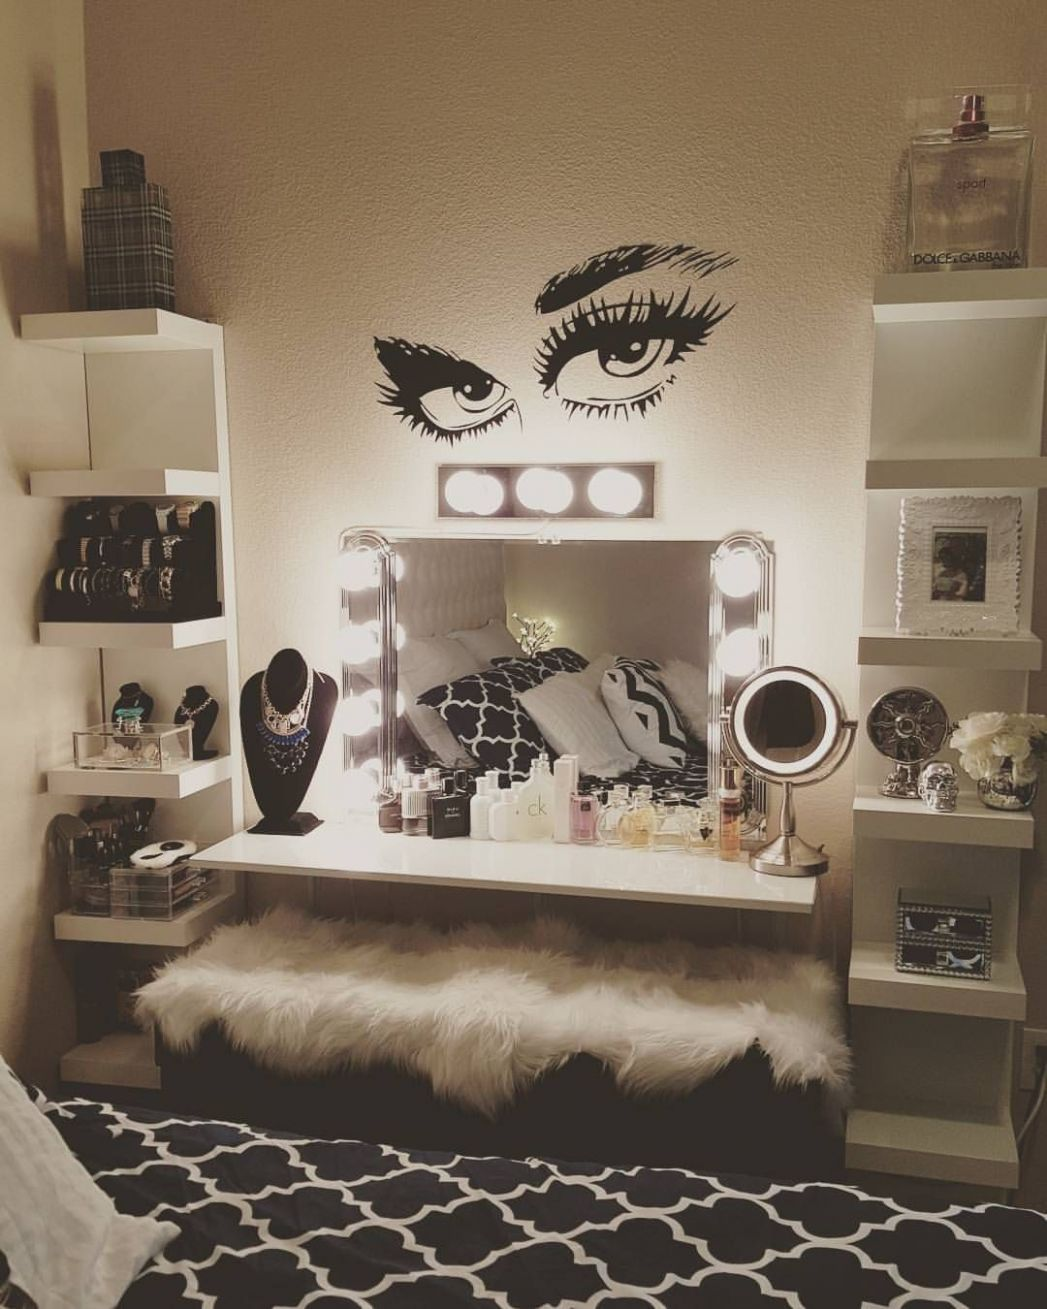 10+ DIY Makeup Room Ideas, Organizer, Storage and Decorating ..